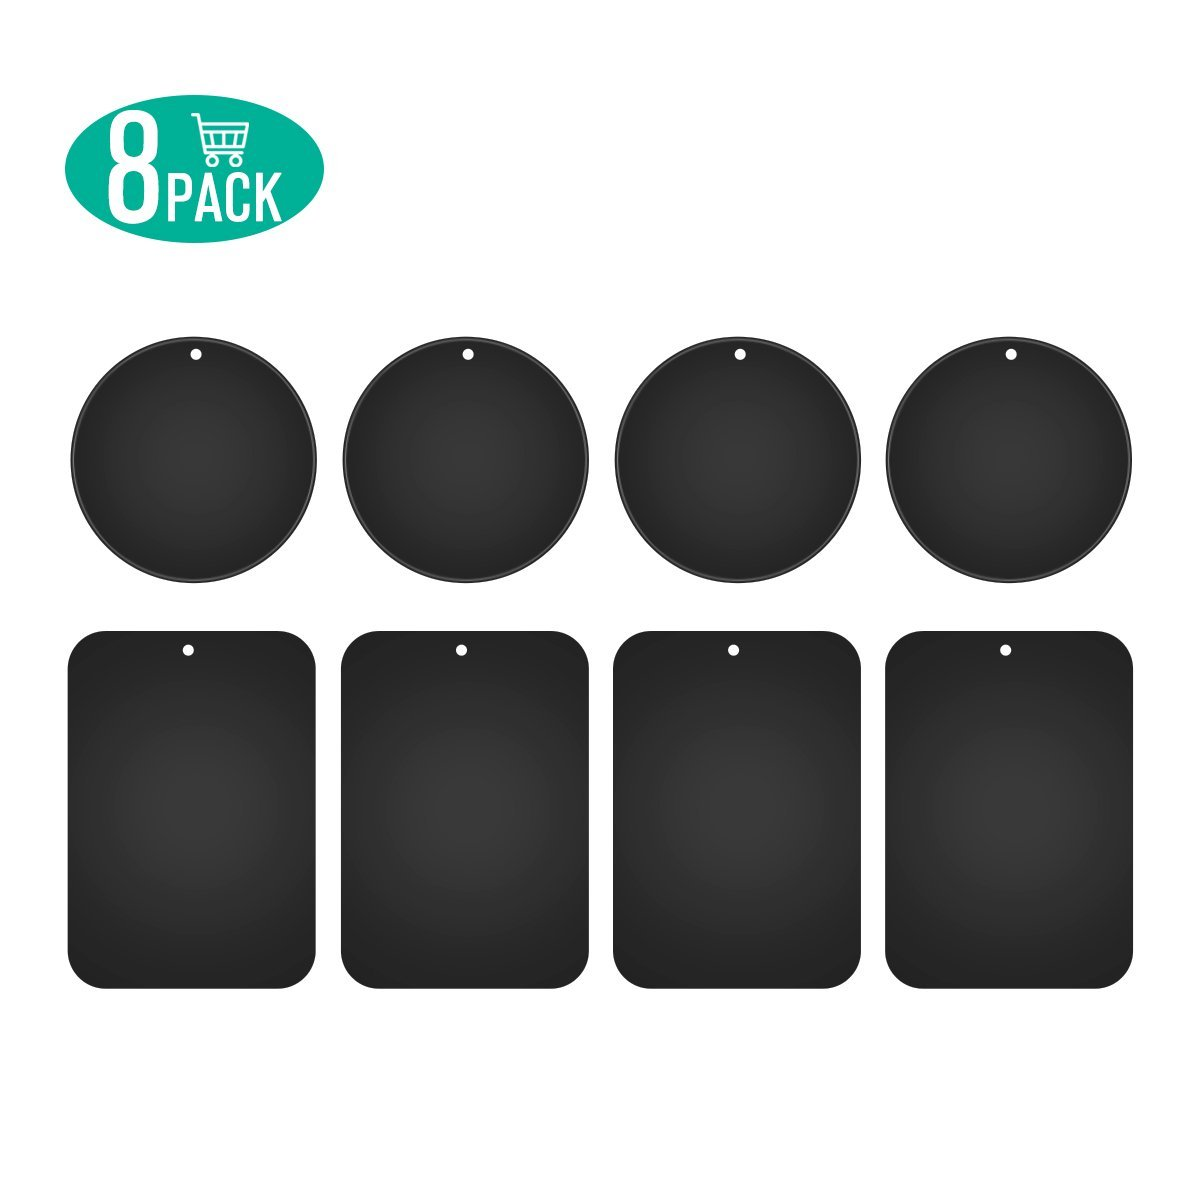 Metal Plates for Magnetic Car Mount,Nekteck Replacement Metal Plates with Strong 3M Adhesive for Magnetic Air Vent Phone Car Mount Holder,GPS Holder, 4 Rectangulars and 4 Rounds, 8 Pack, Black